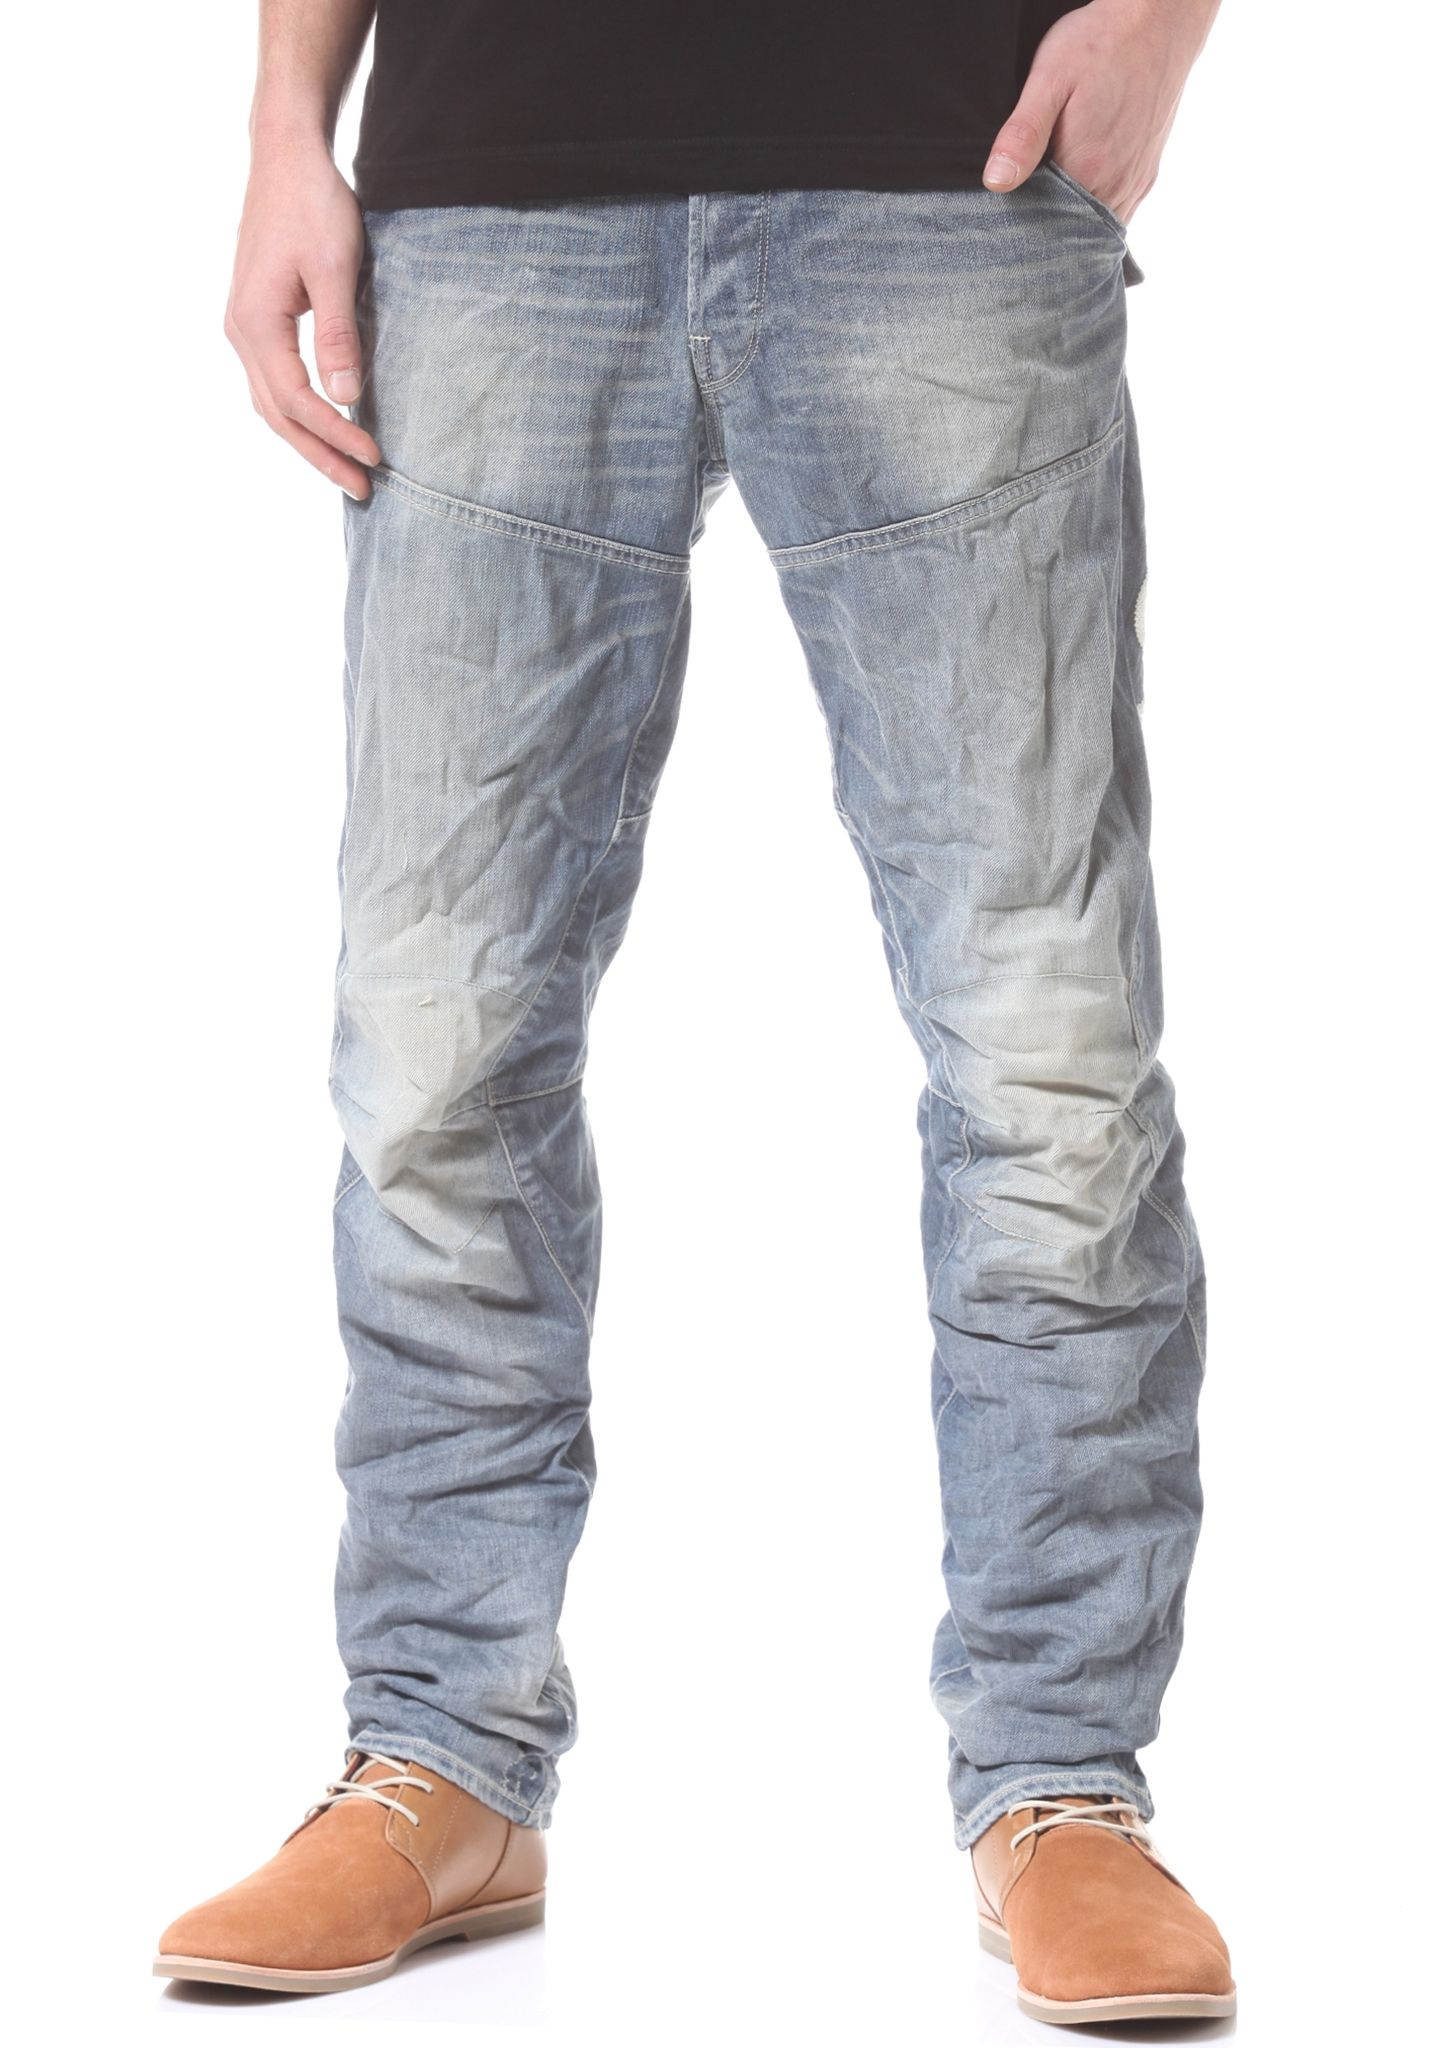 G-Star Mens Motor 5620 Embro Tapered Jeans G-Star